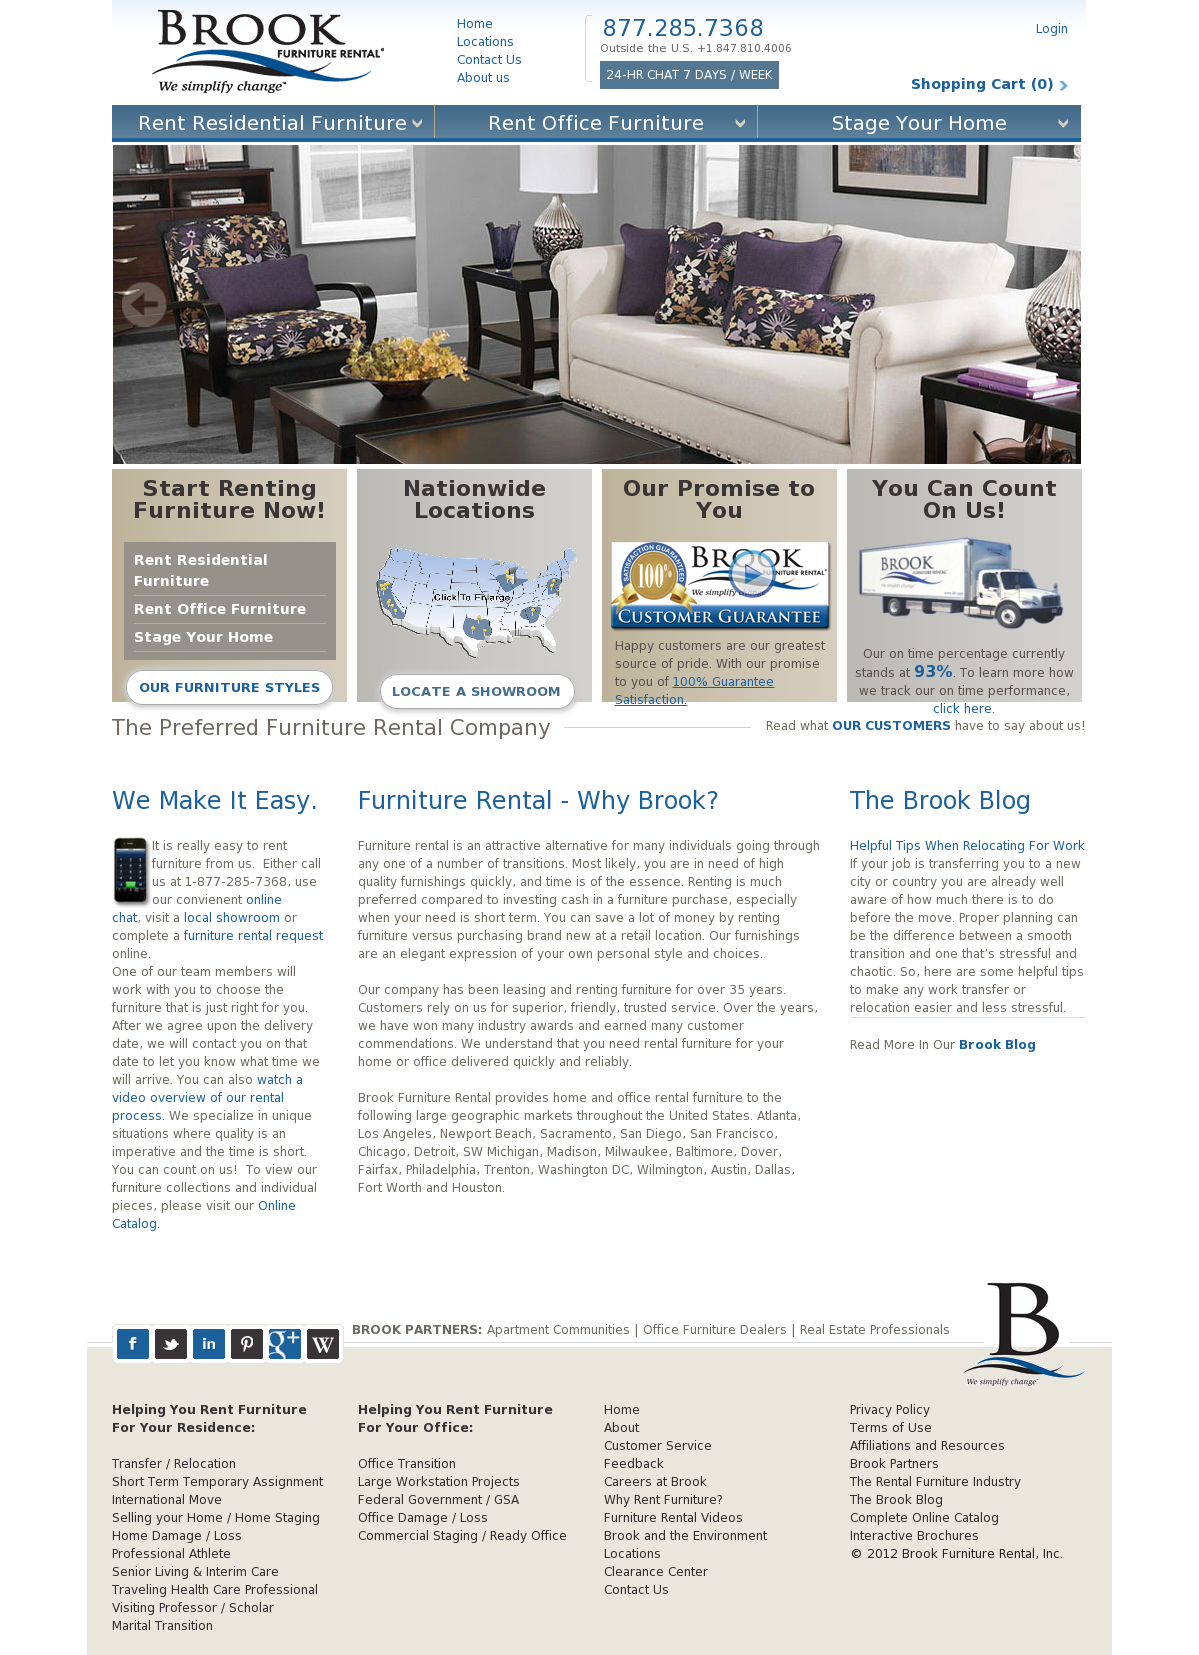 Superieur Brook Furniture Rental Competitors, Revenue And Employees   Owler Company  Profile